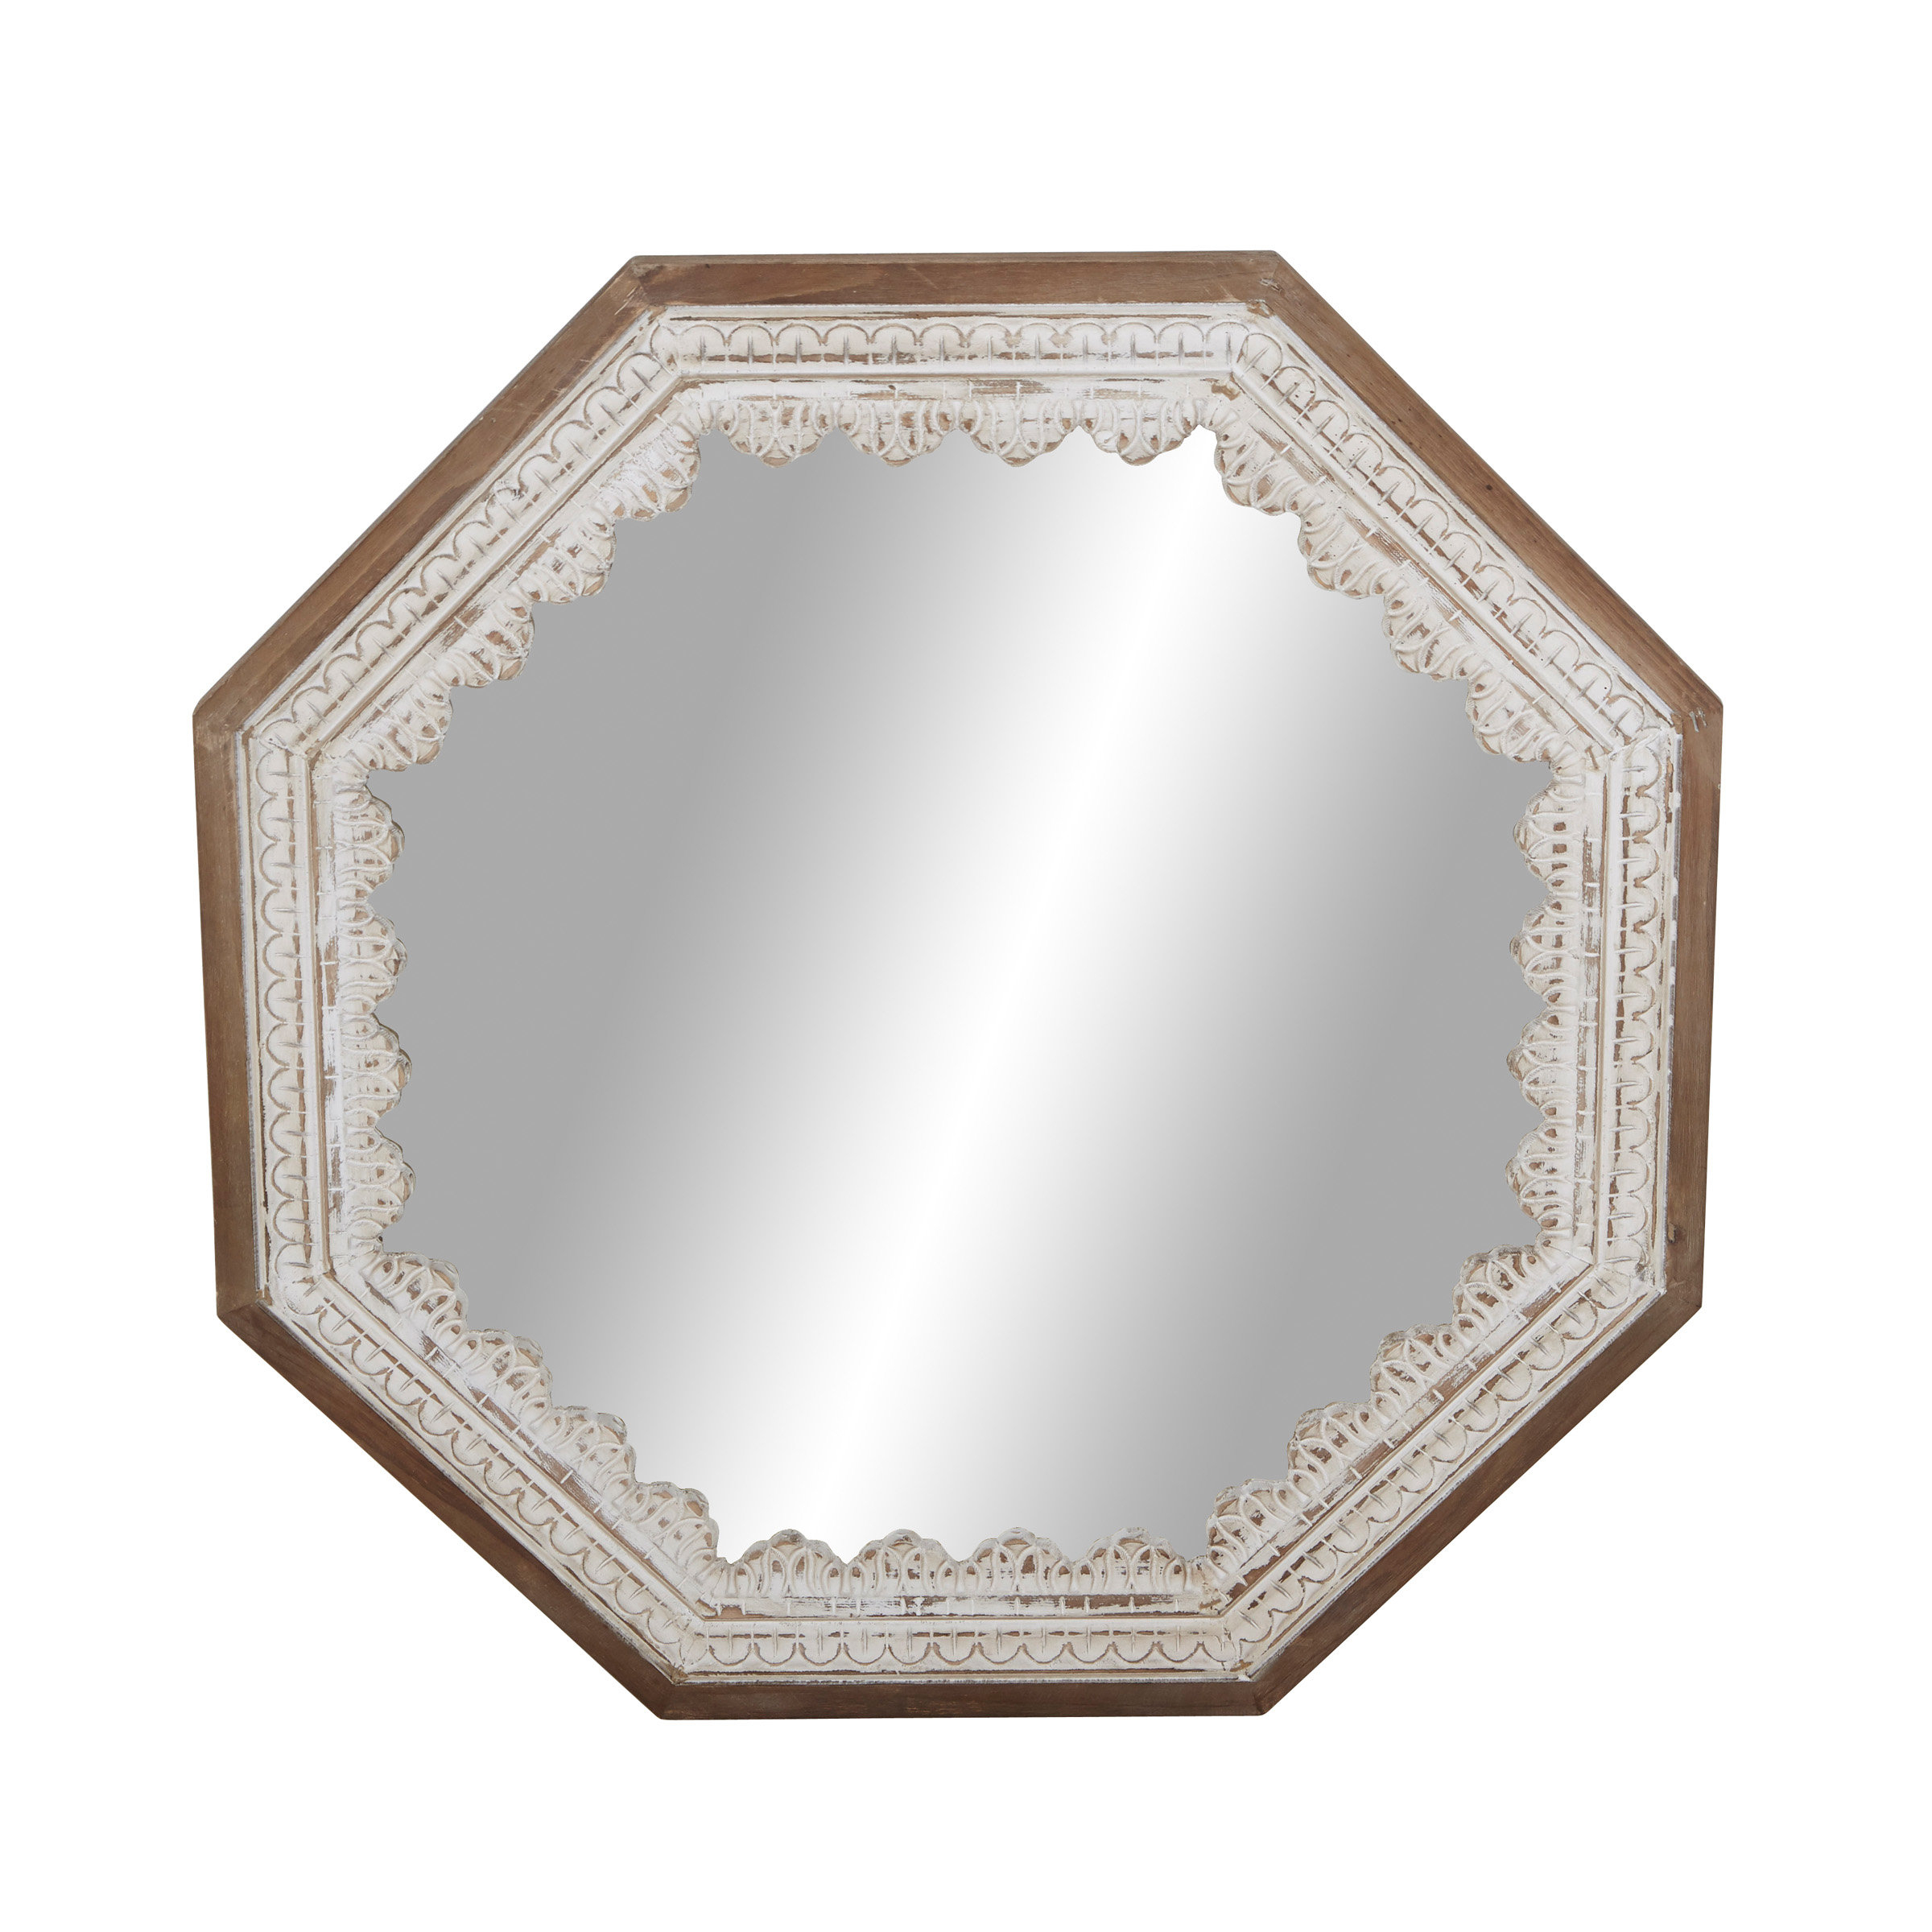 Country French Mirrors | Wayfair With Regard To Polito Cottage/country Wall Mirrors (Image 5 of 30)